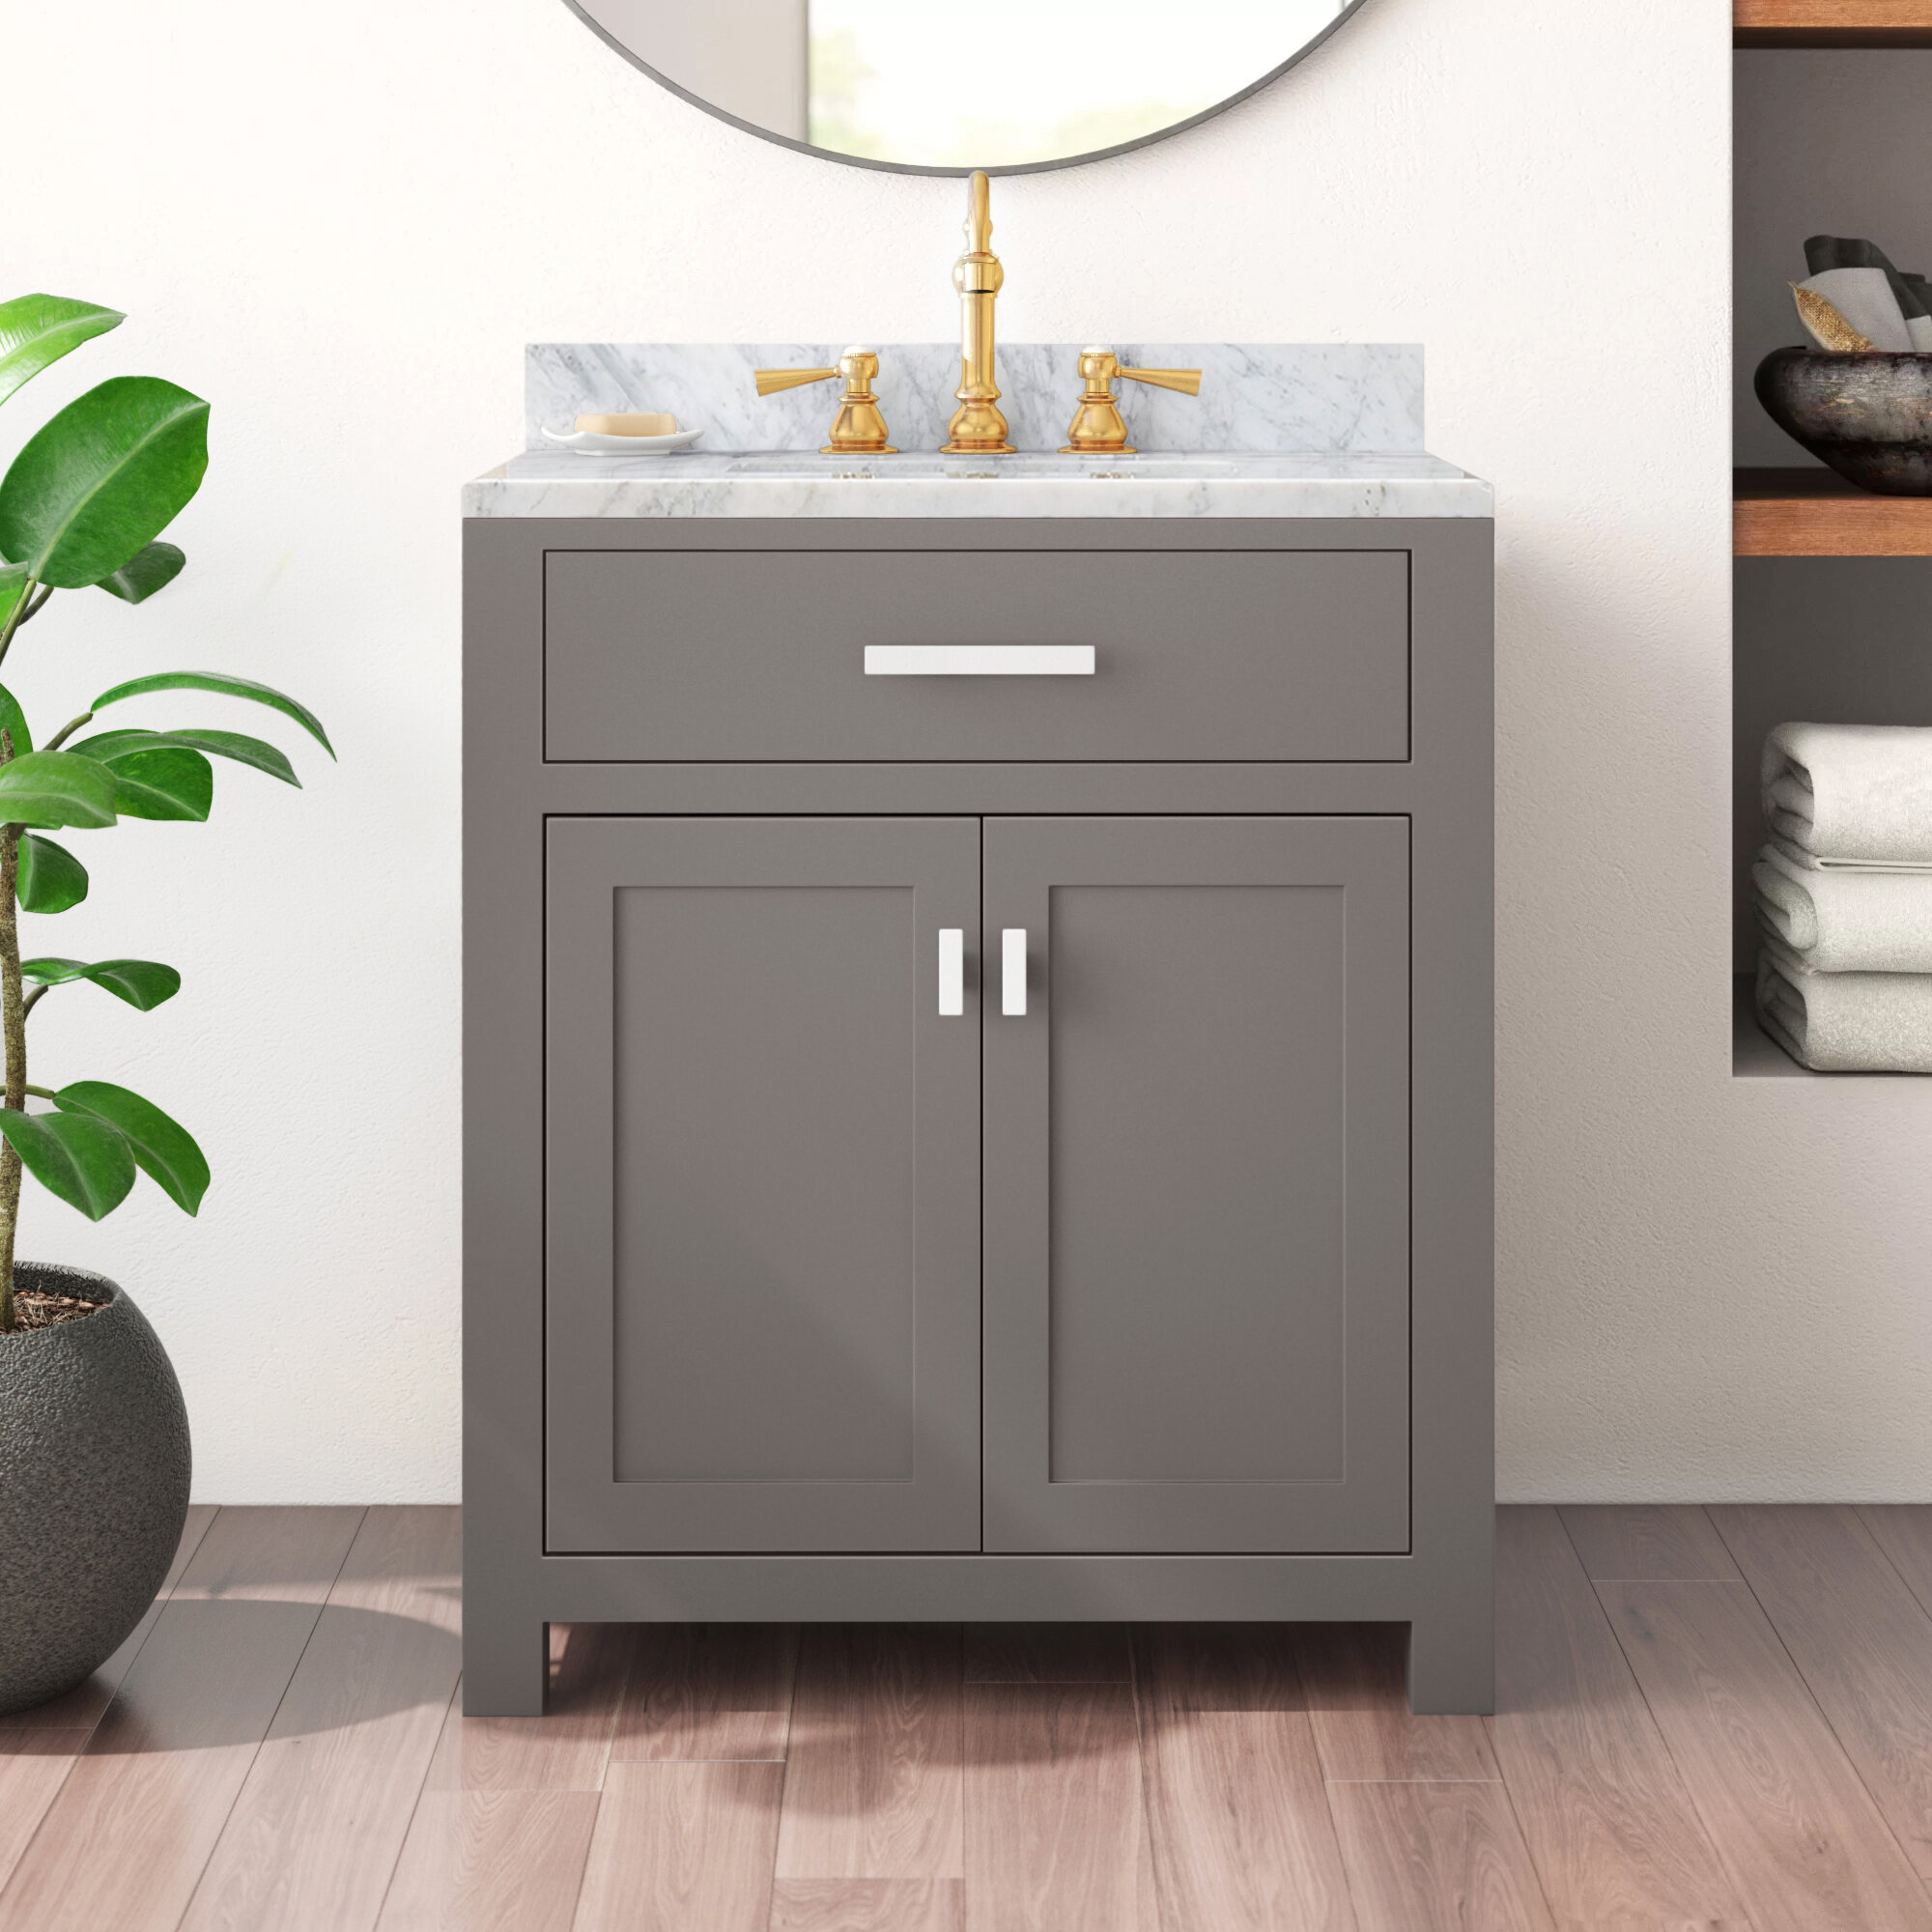 30 Inch Gray Bathroom Vanities Free Shipping Over 35 Wayfair